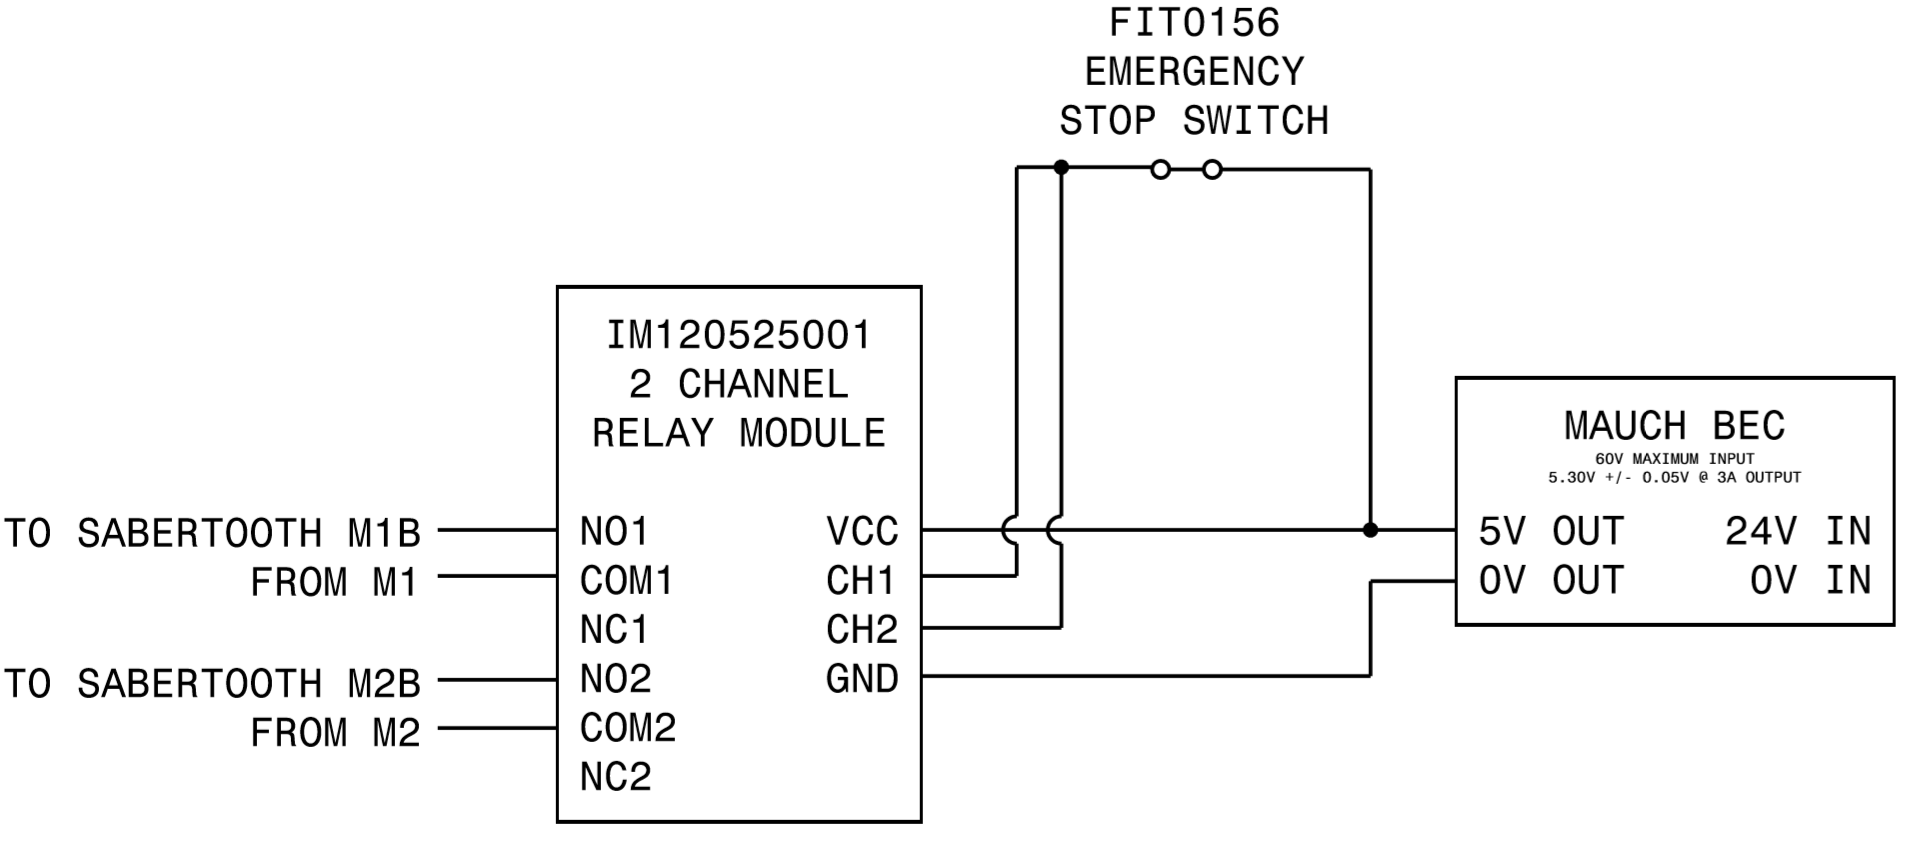 Emergency Stop Safety Switch Wiring Diagram Posts Push On Start The Mower Project Button